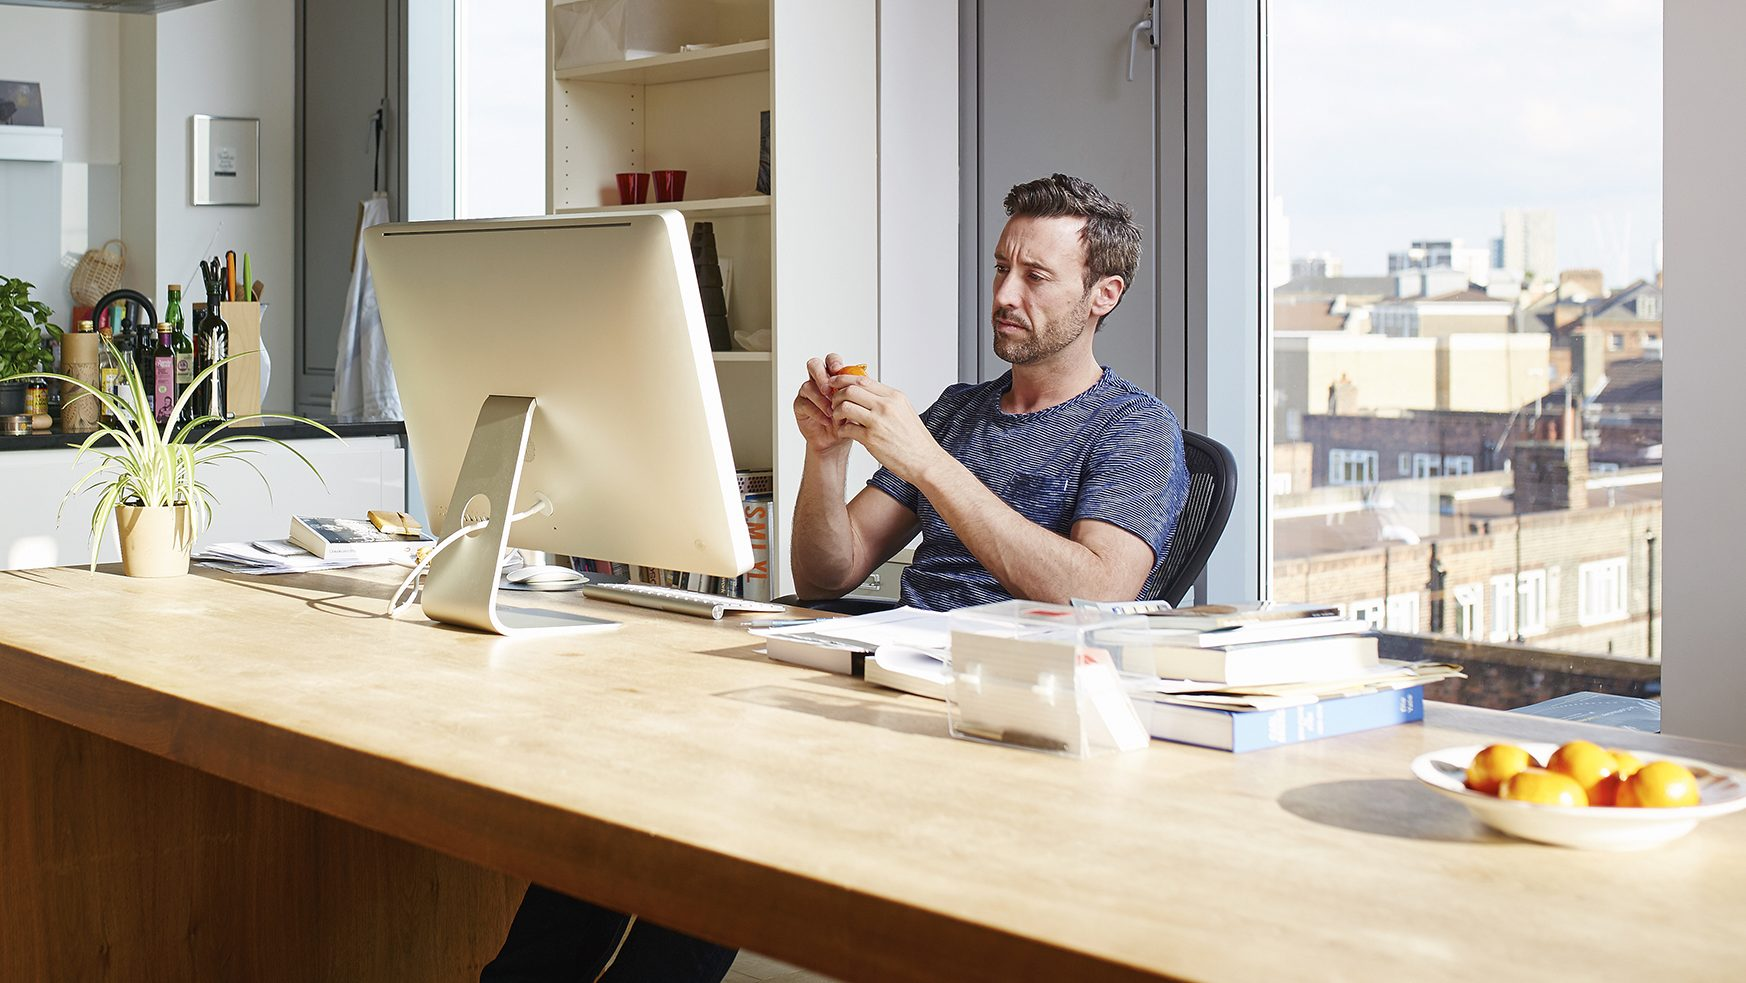 Man working alone in his apartment (Getty Images)